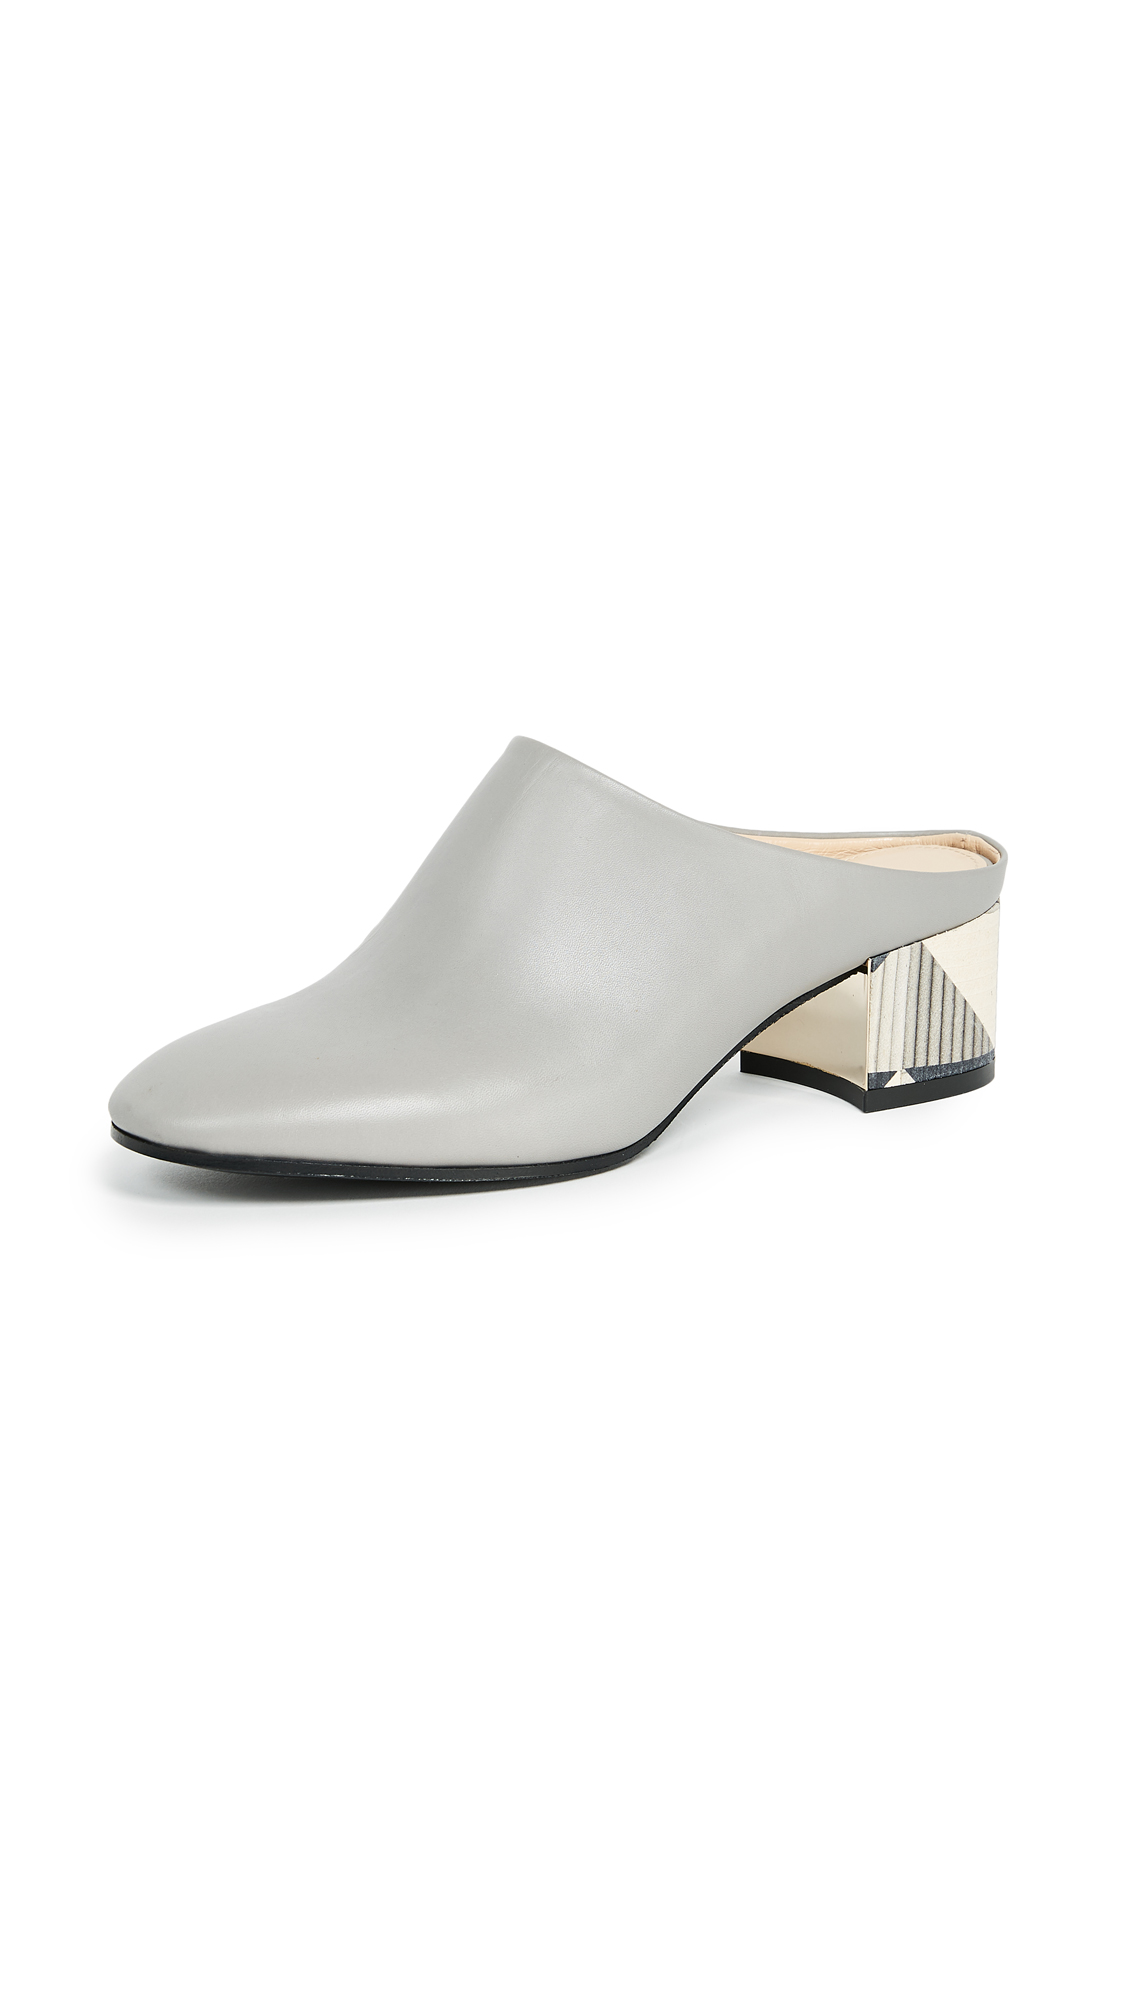 Marion Parke Gibson Mules - Slate